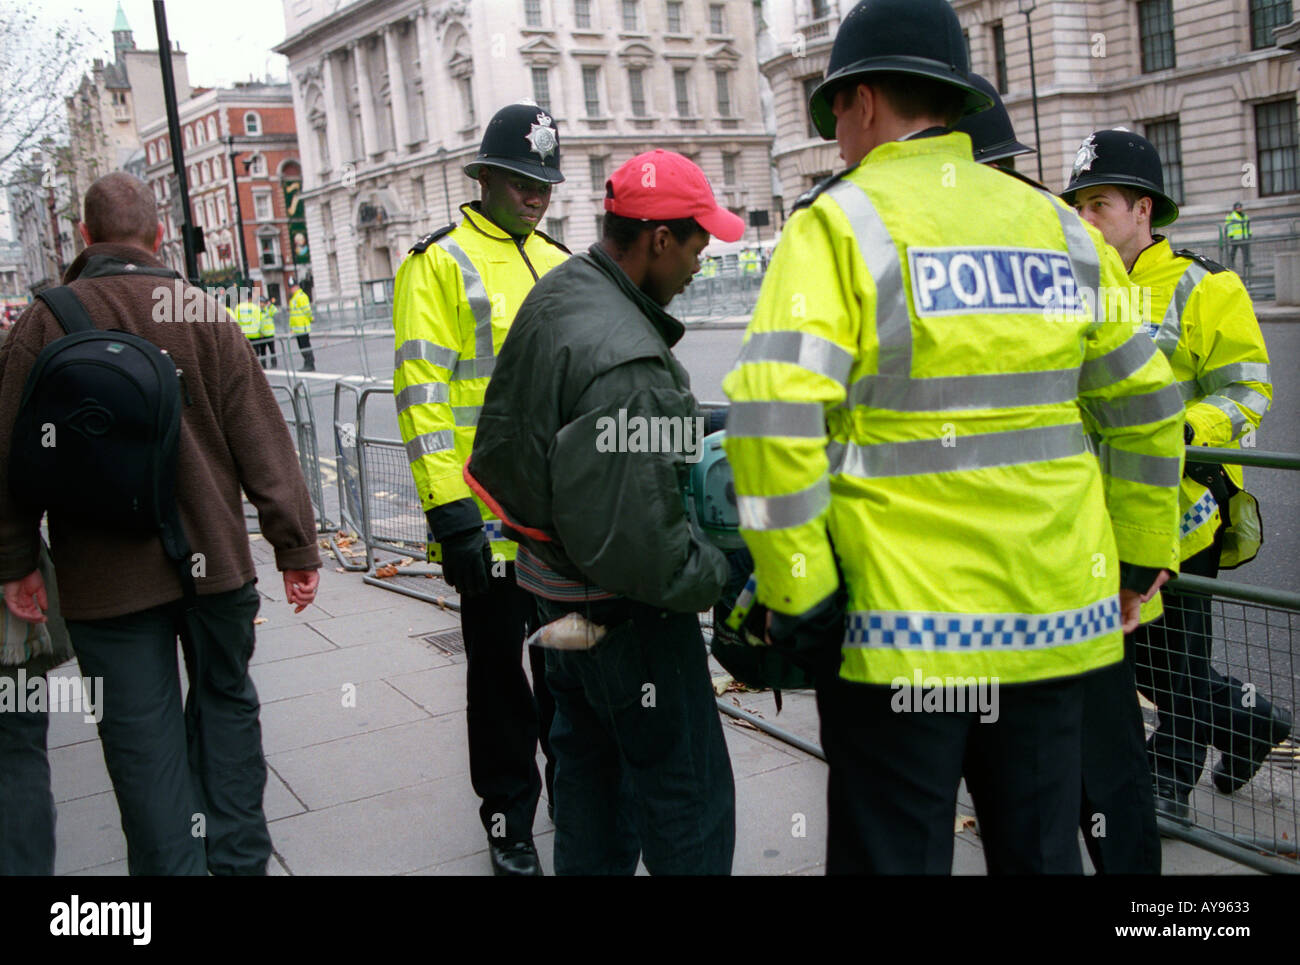 police officers stop and searching young black youth in central London. - Stock Image